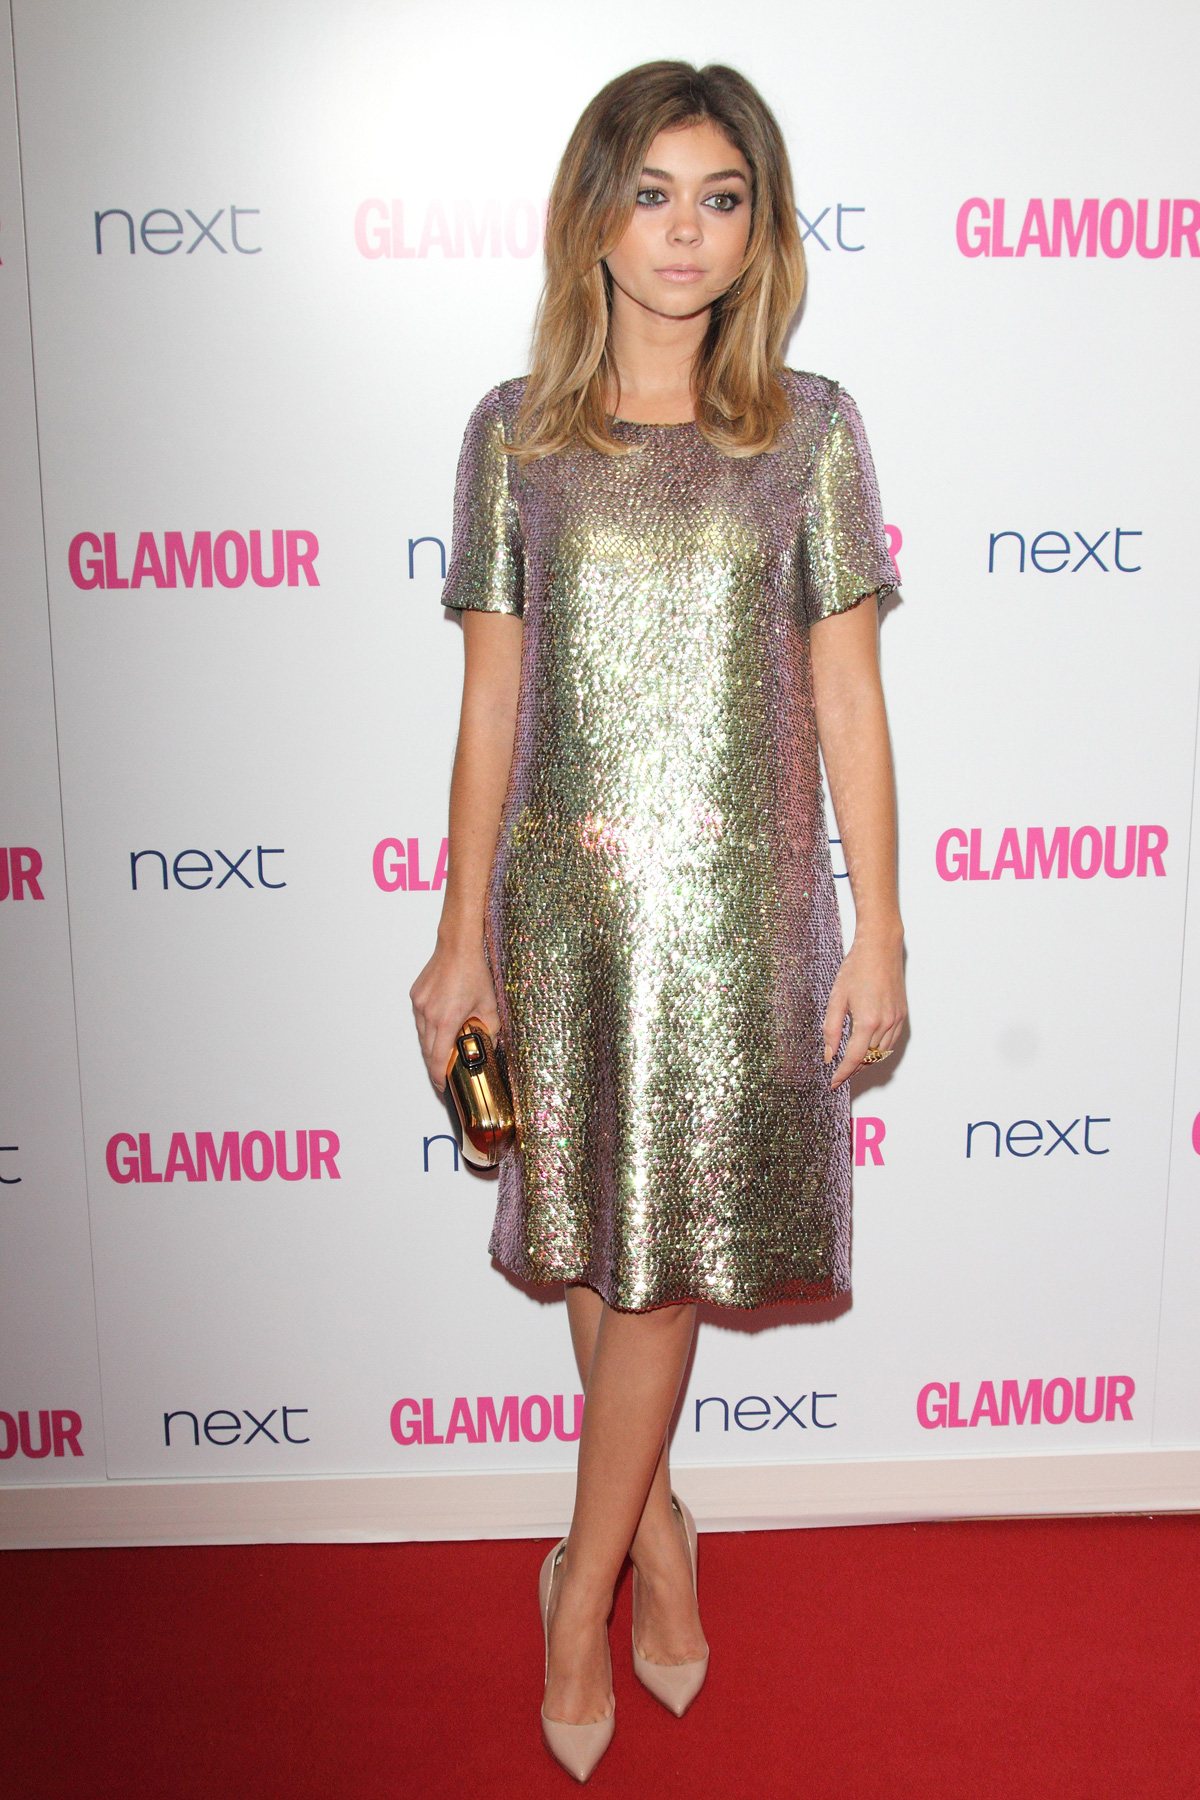 Sarah Hyland at the Glamour Women of the Year Awards